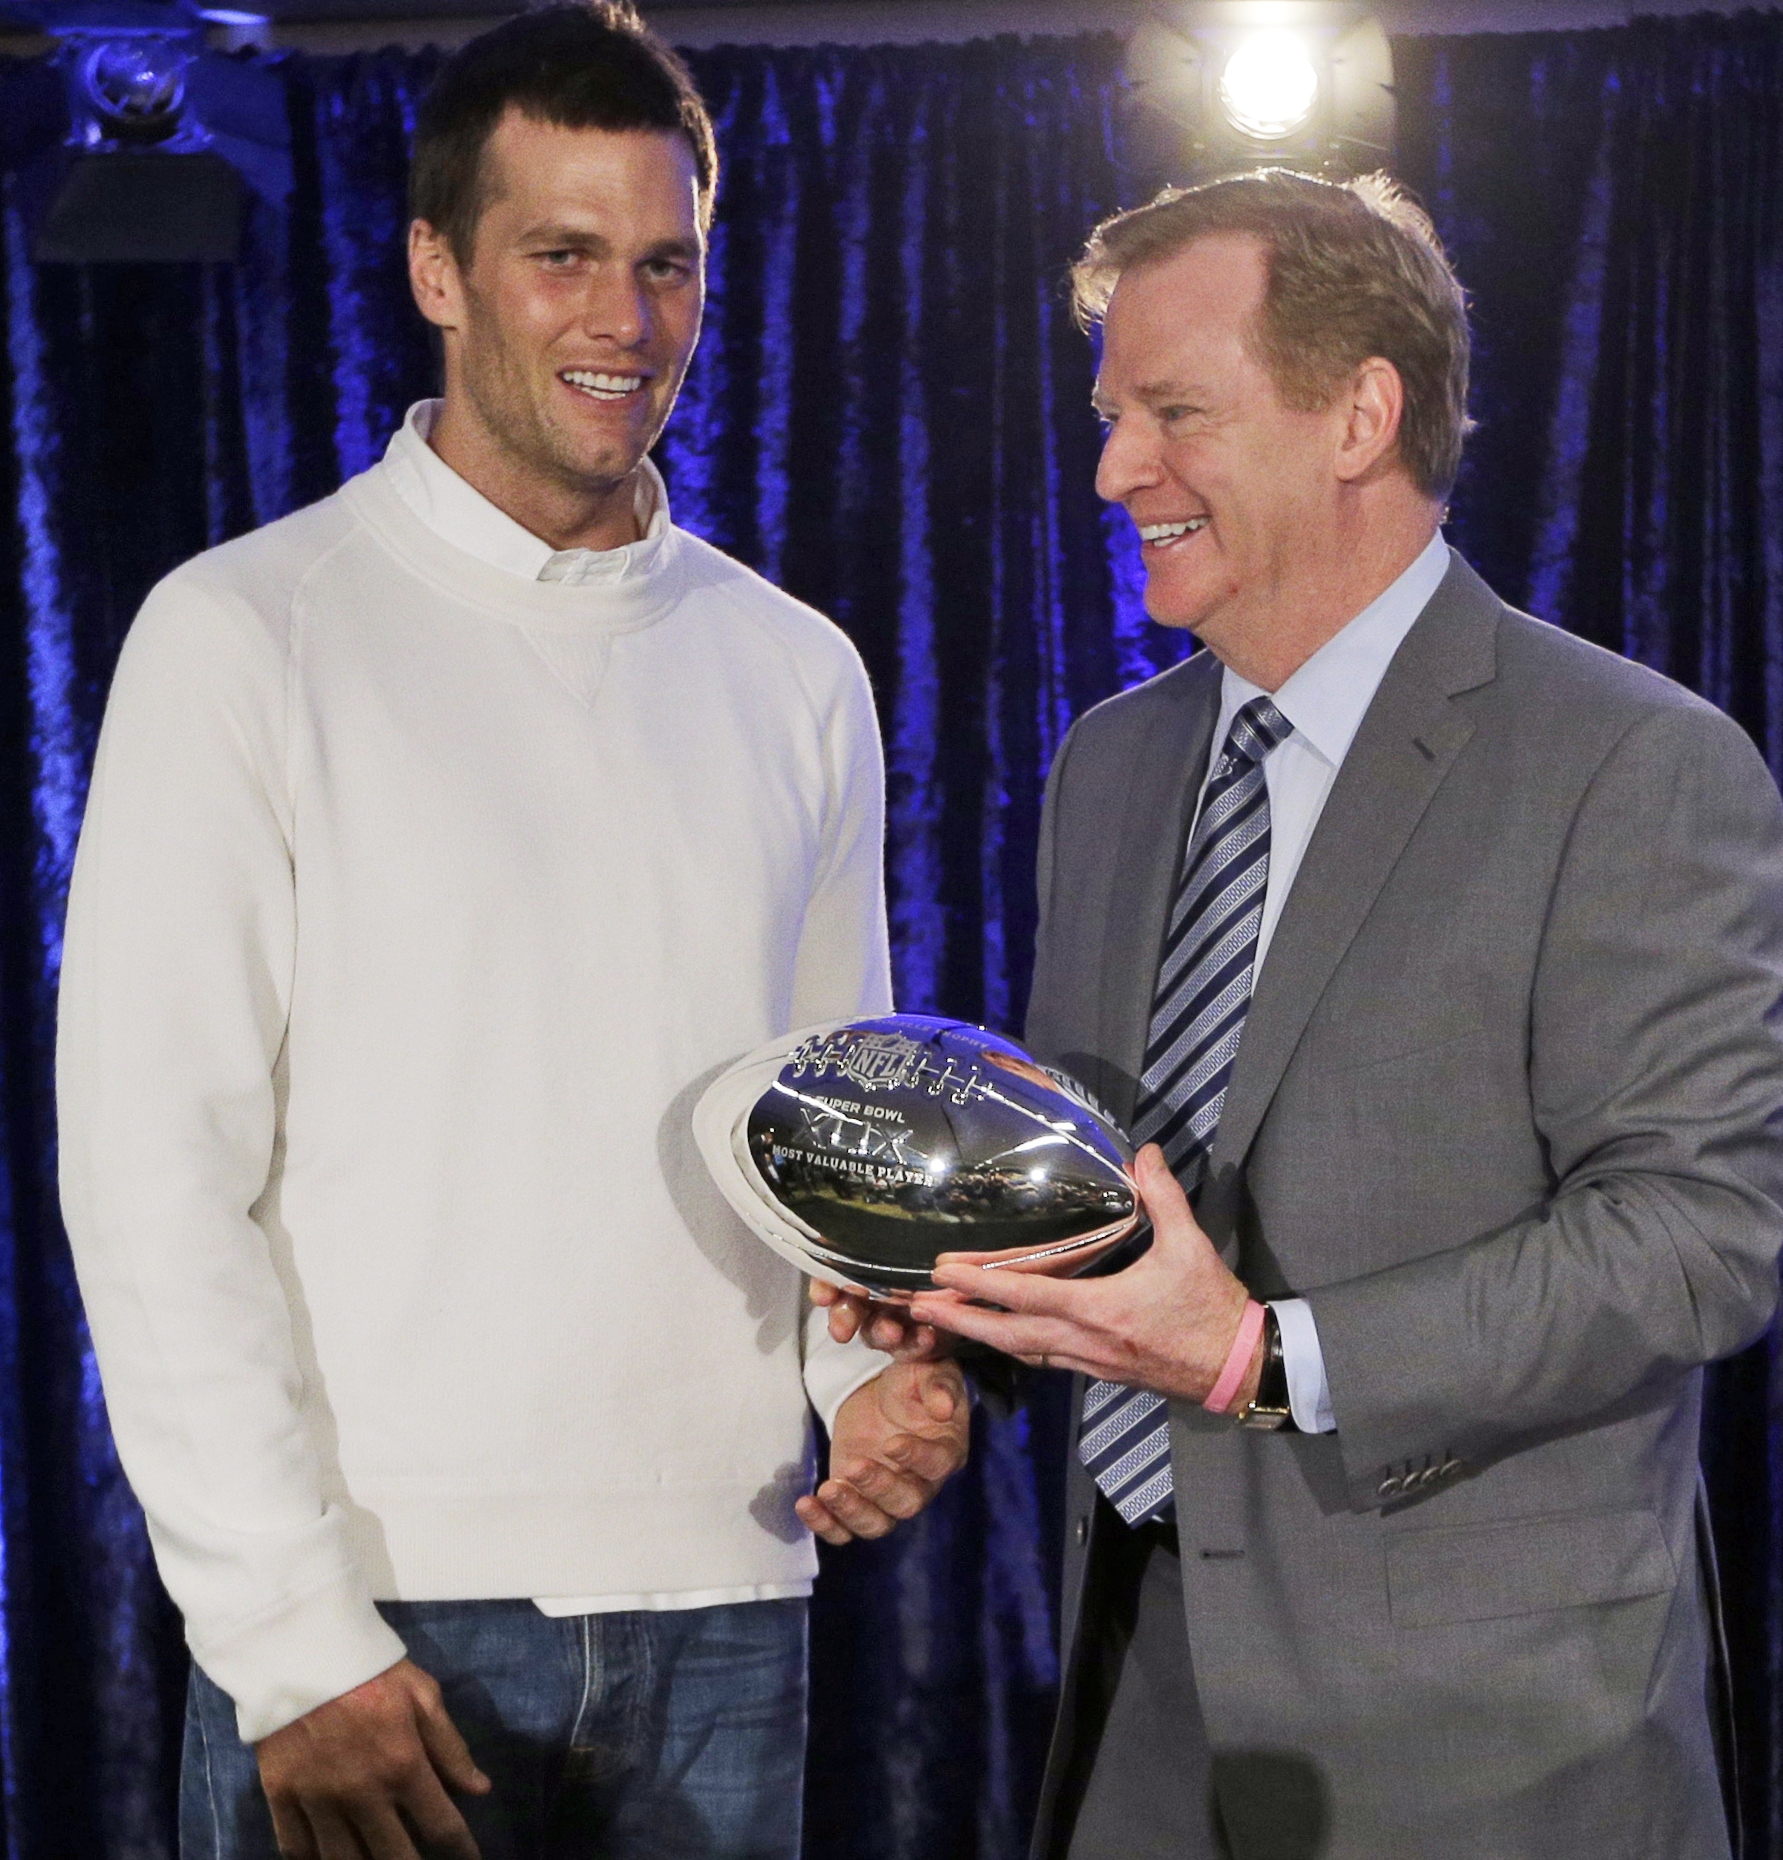 FILE - In this Feb. 2, 2015, file photo, New England Patriots quarterback Tom Brady poses with NFL Commissioner Rodger Goodell during a news conference after NFL football's Super Bowl XLIX in Phoenix, Ariz. Sept. 1 marks 10 years that  Goodell has served